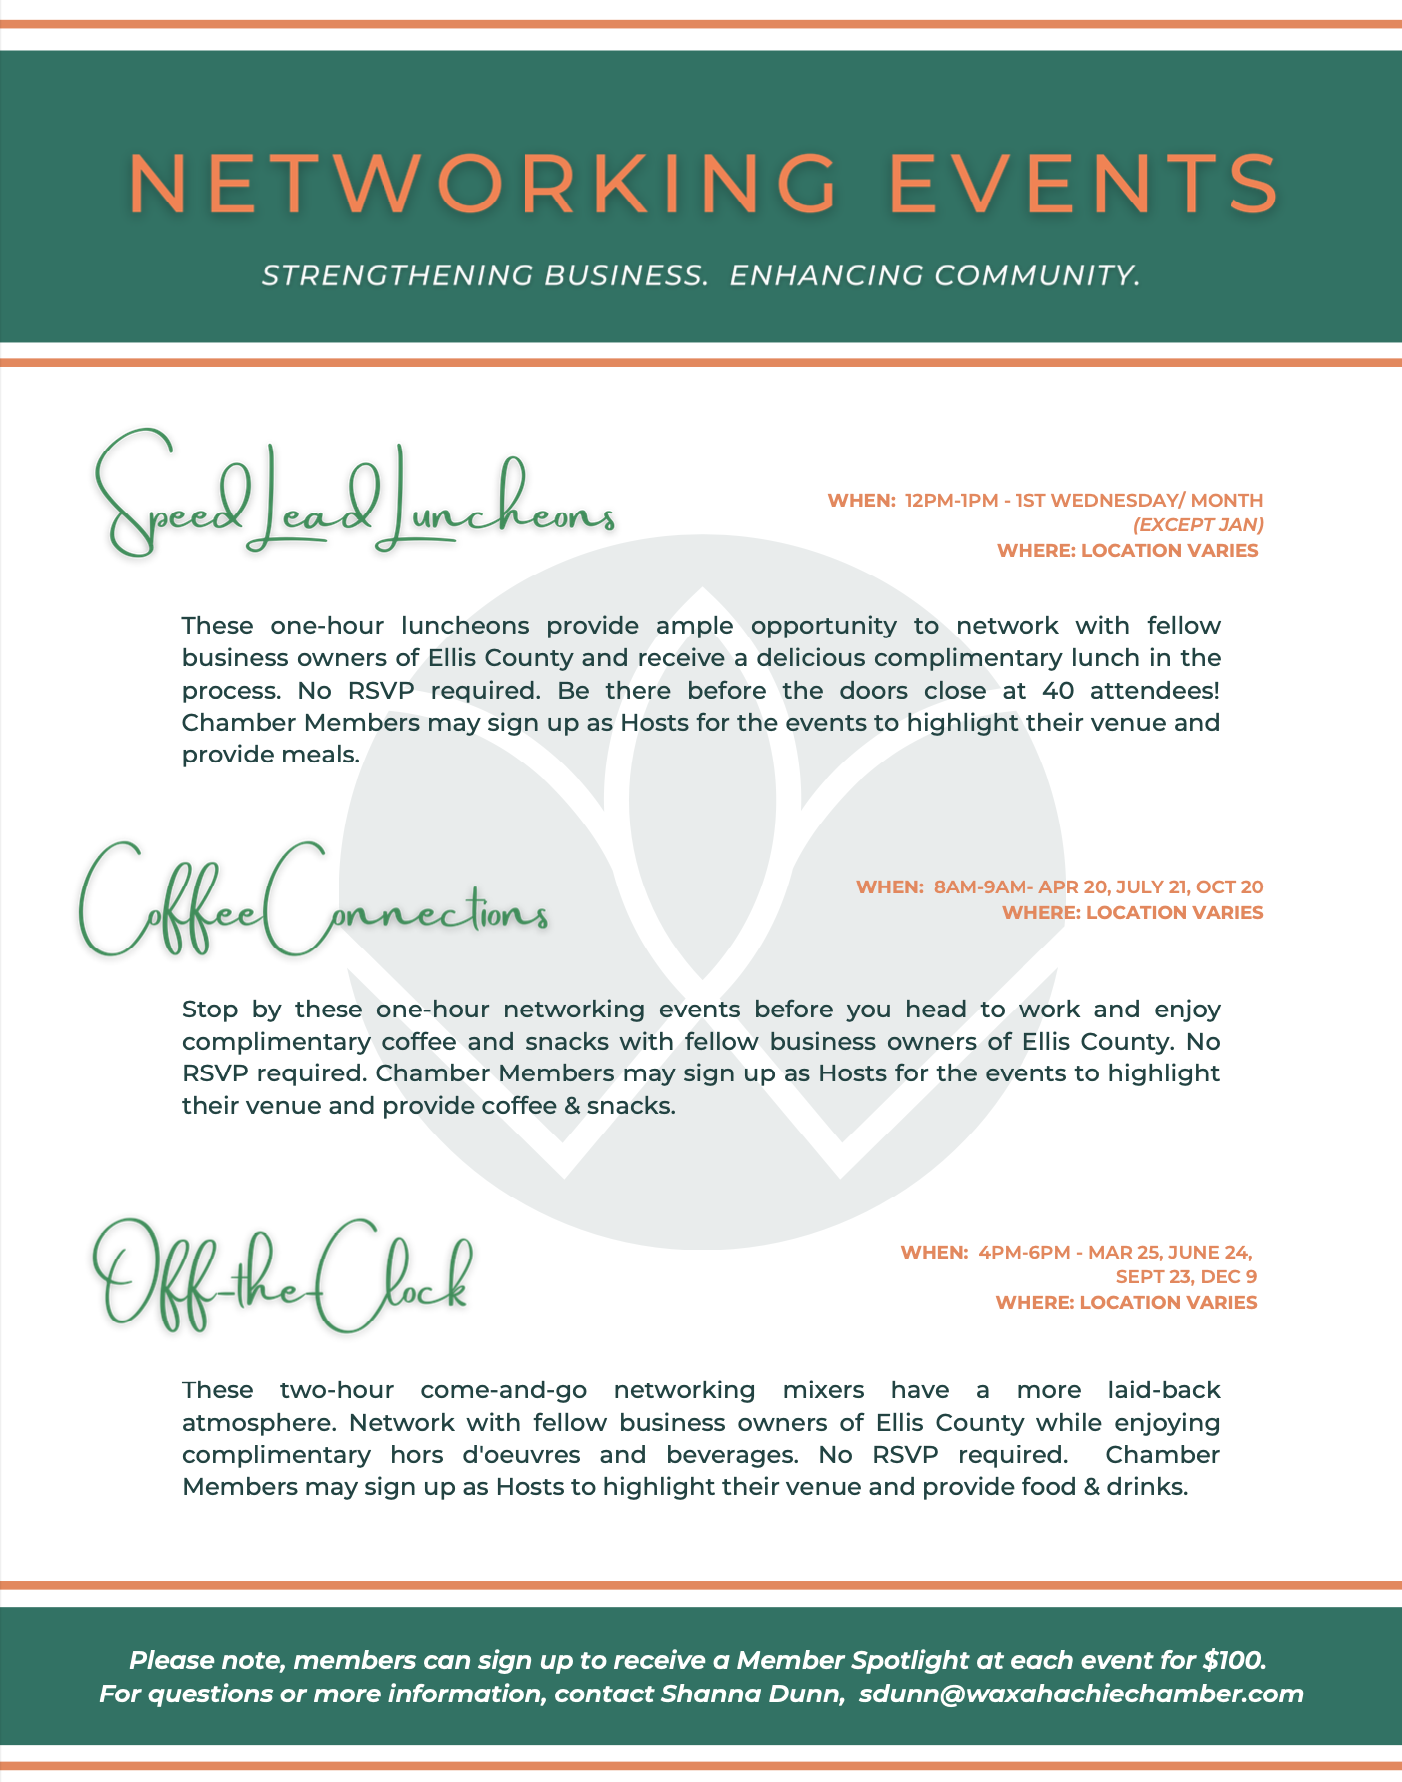 NETWORKING-EVENTS-AS-OF-06.17.21.png